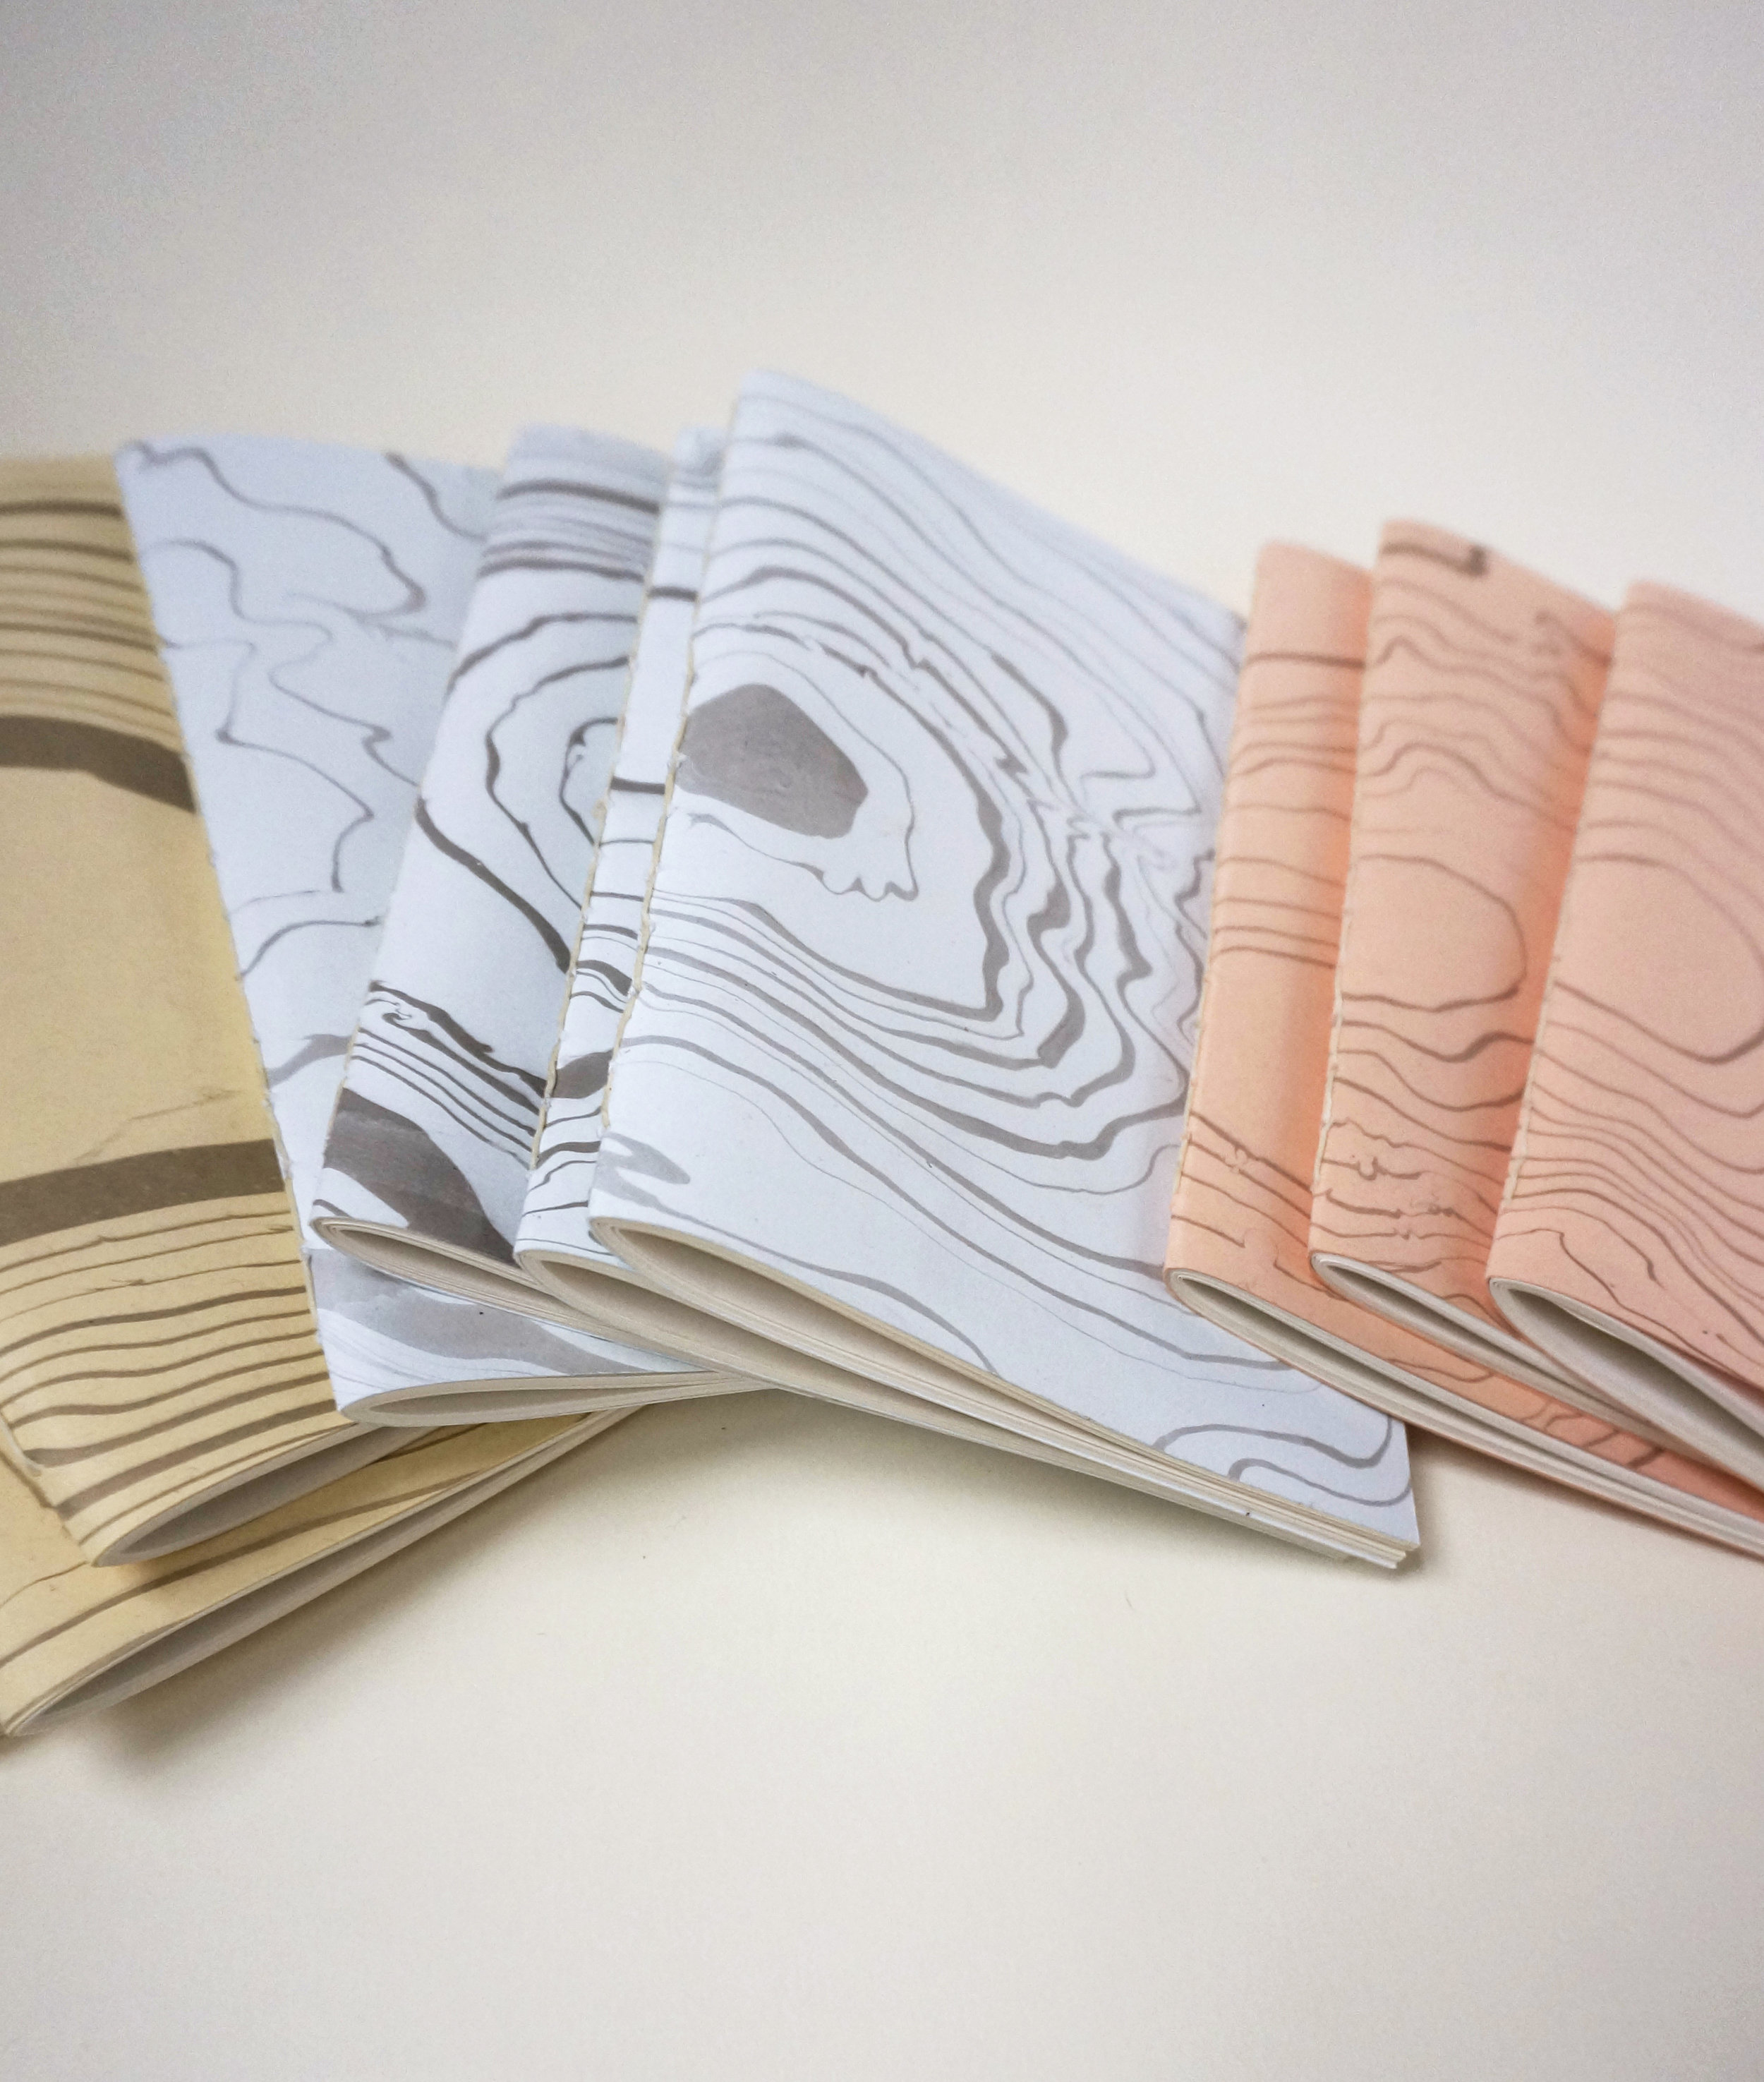 maps journals - all together by color.JPG